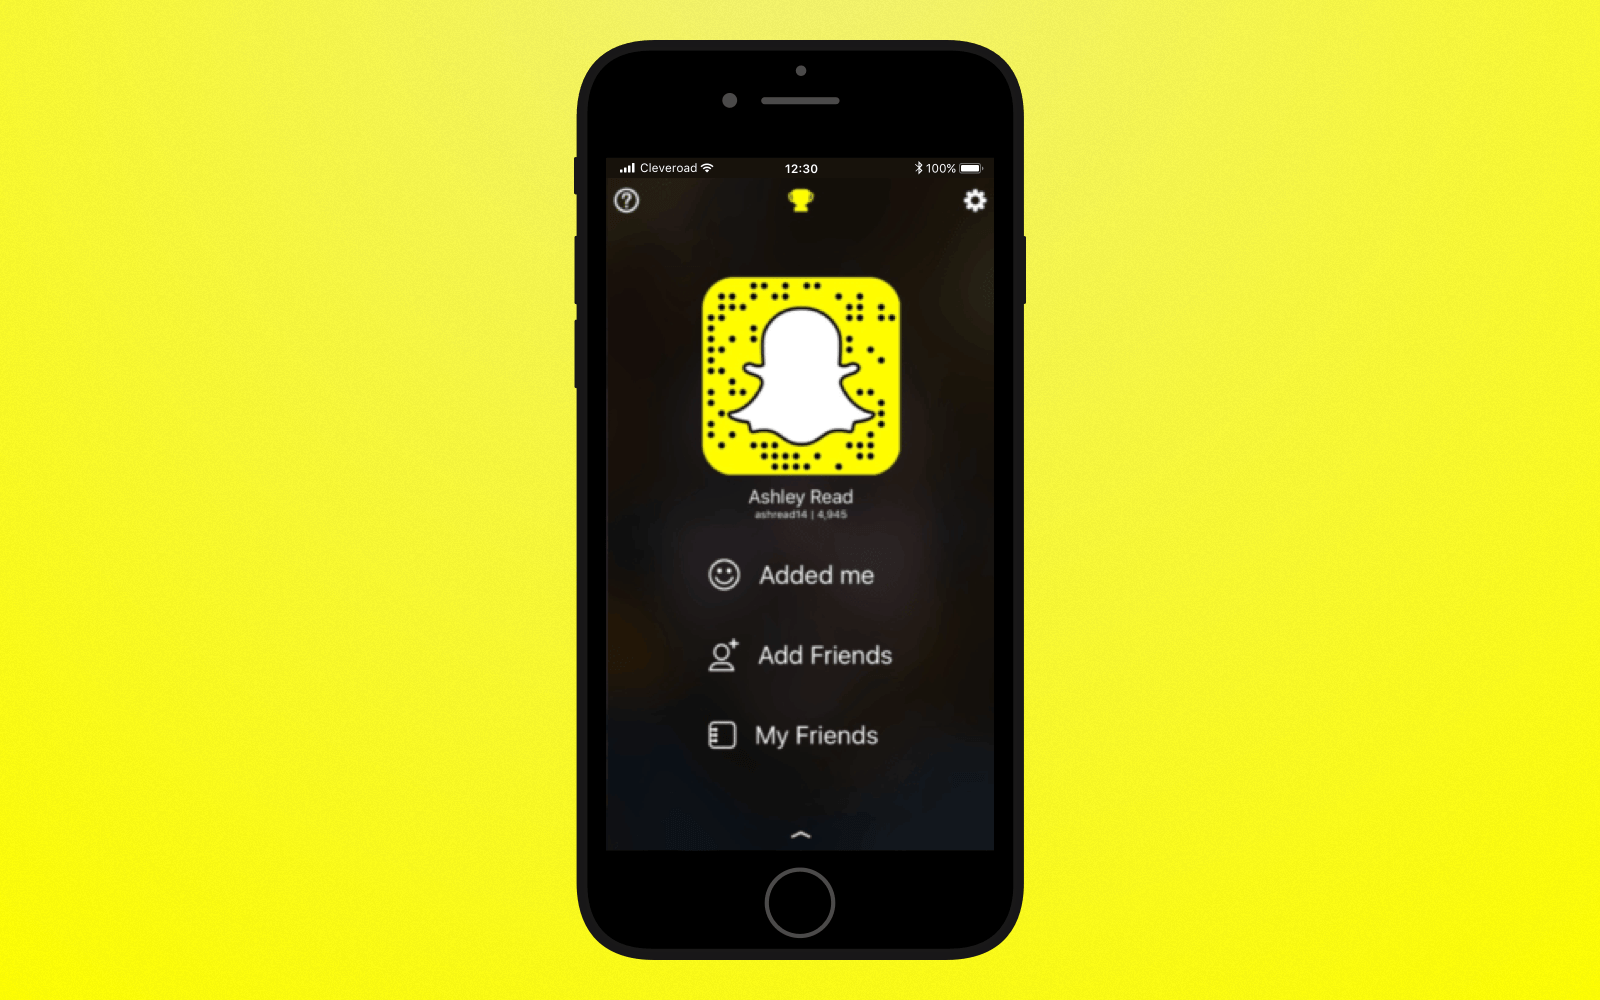 Create add a friend  feature to build an app like Snapchat